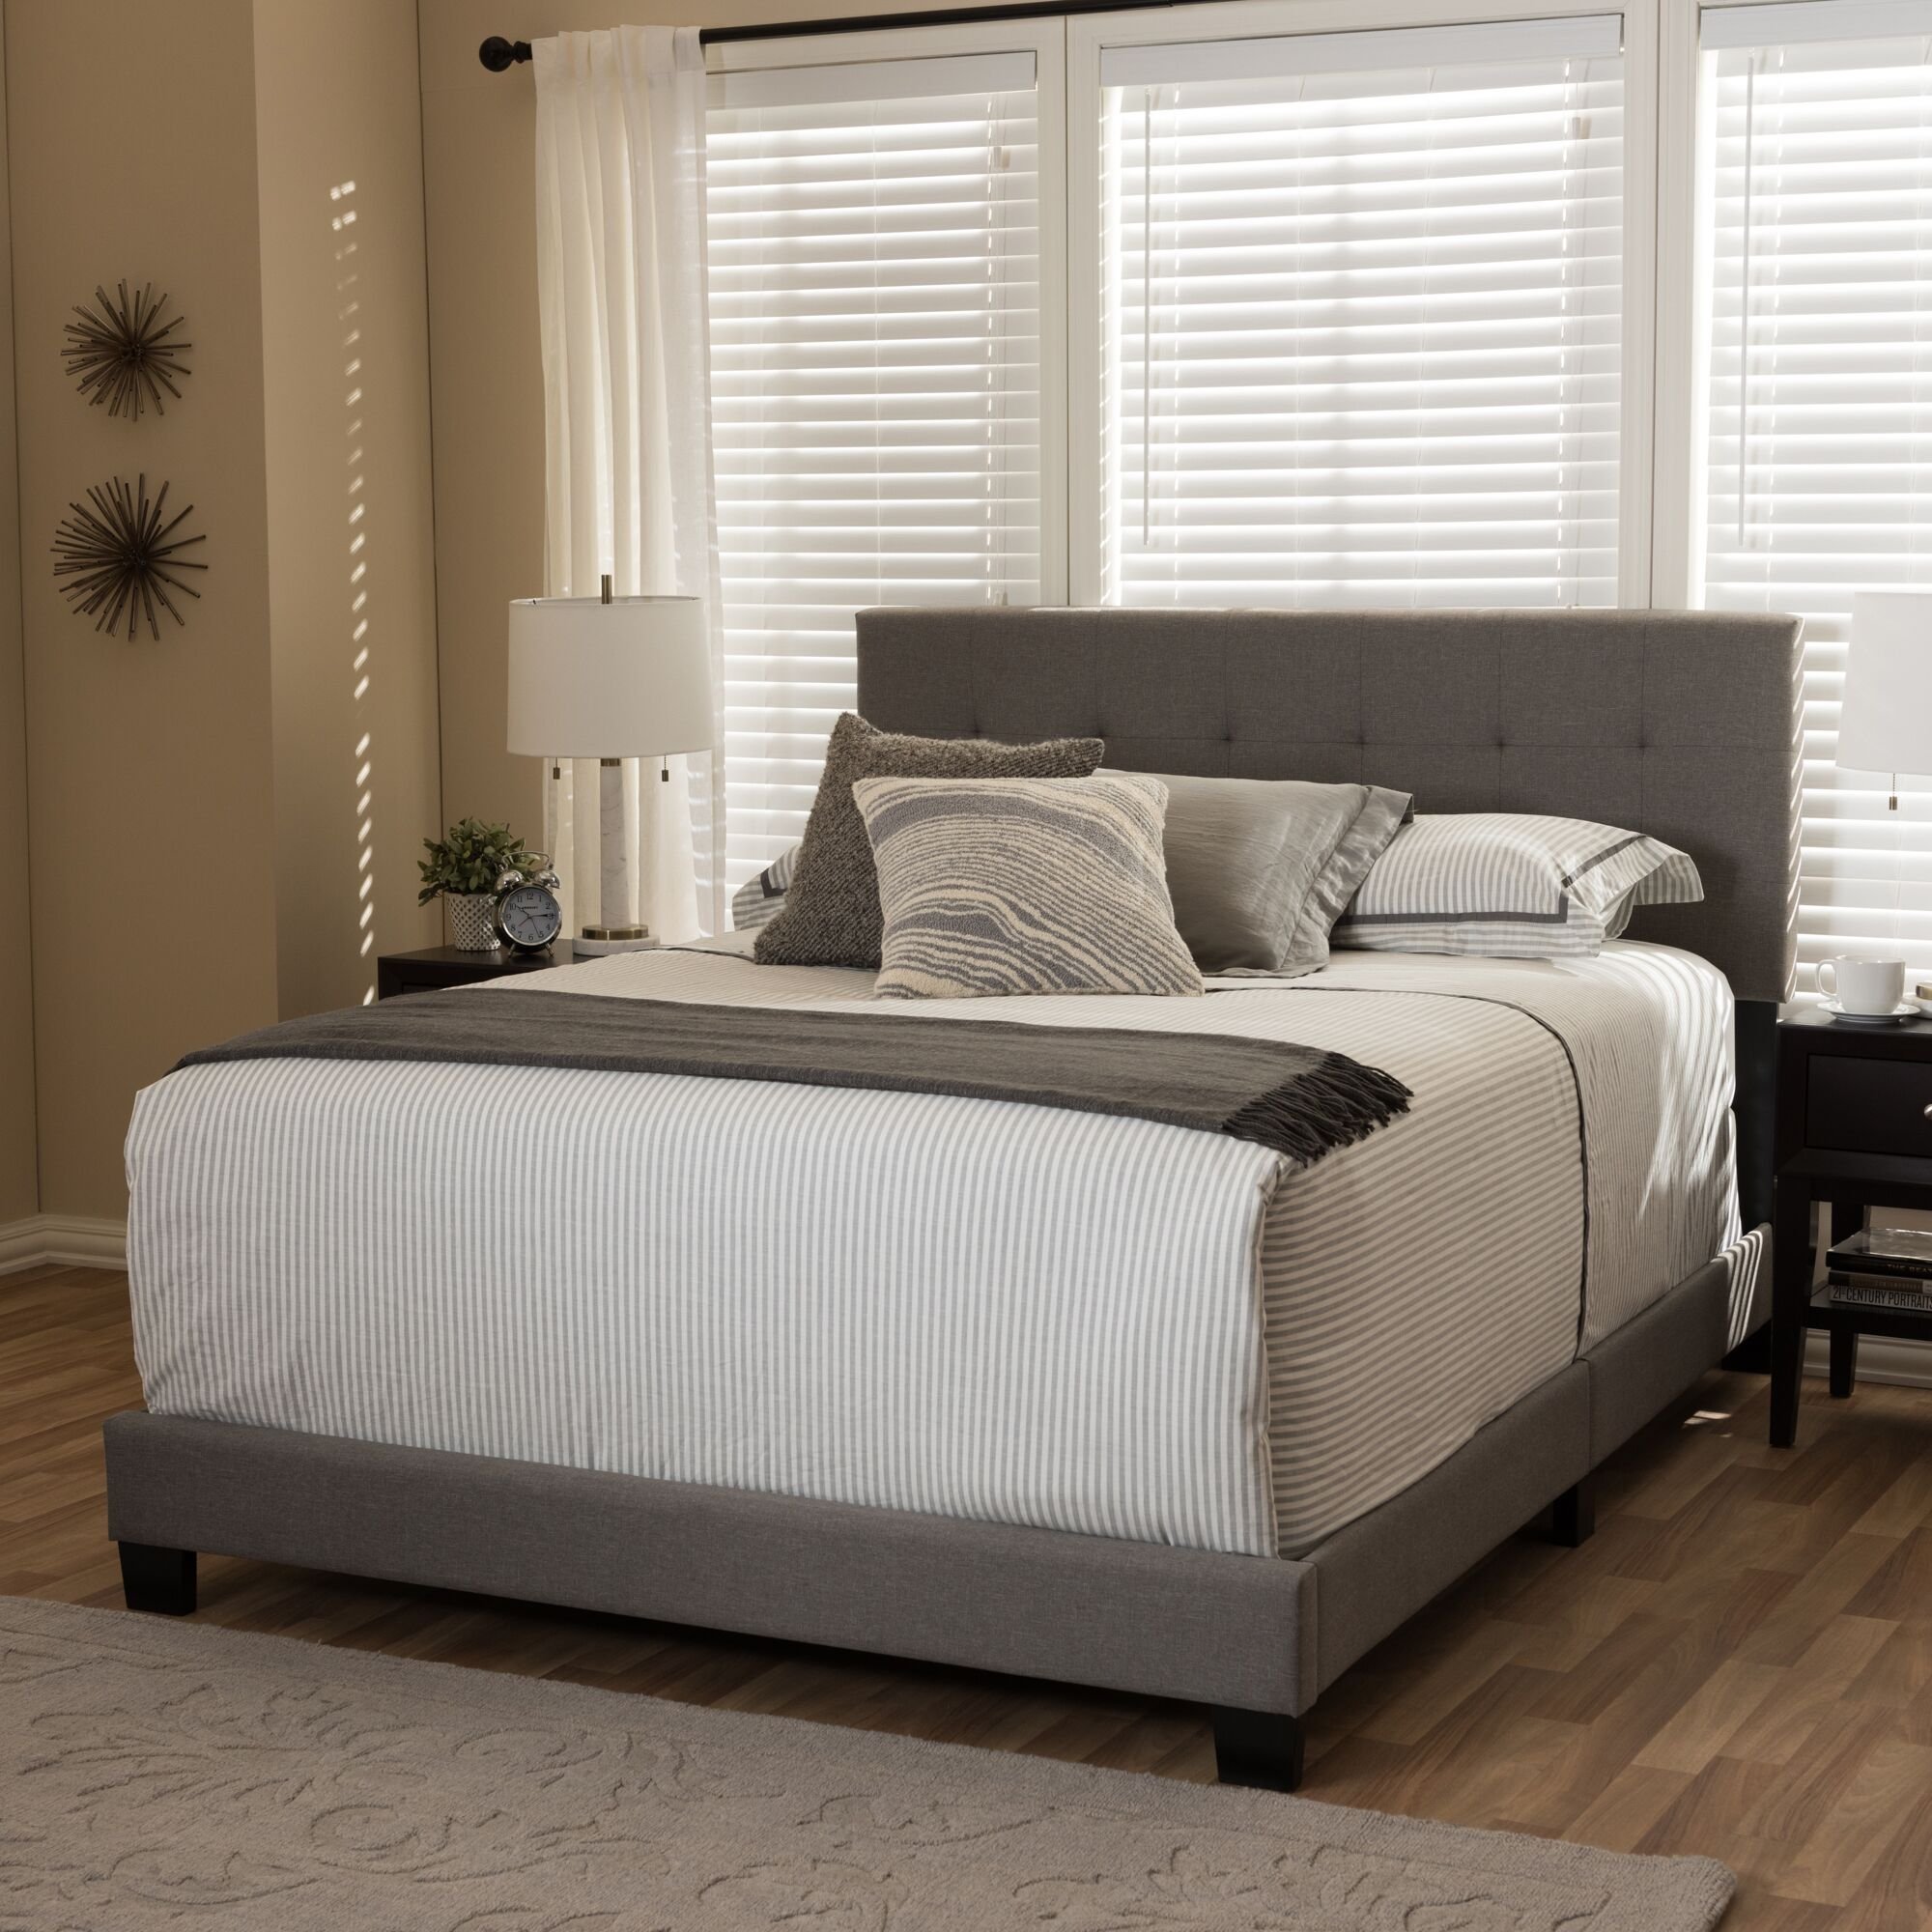 Gianna Upholstered Panel Bed Size: Queen